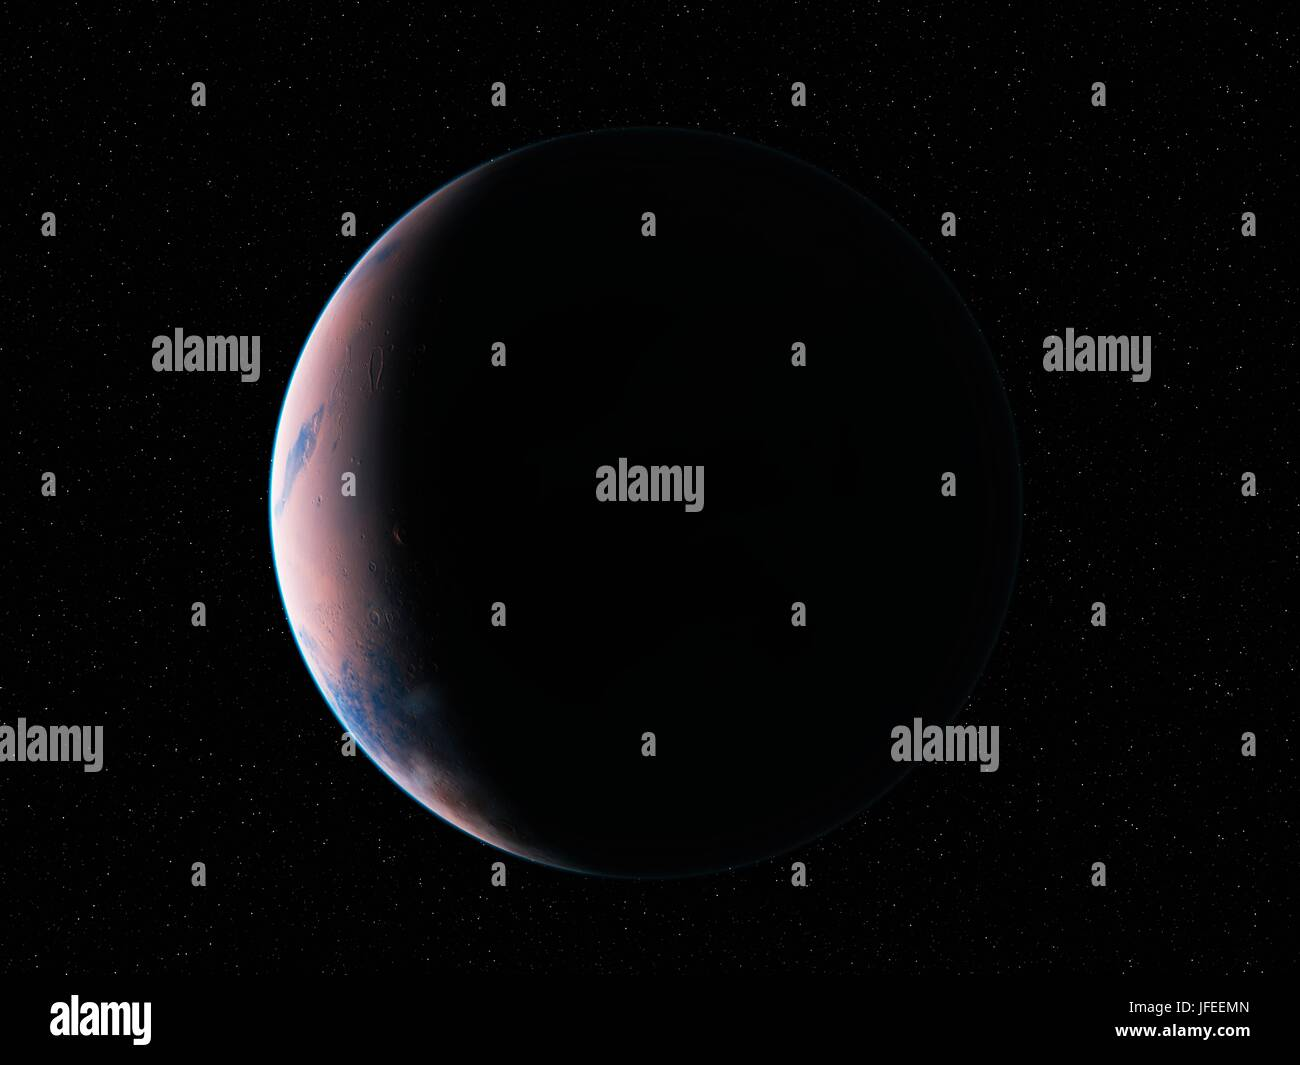 Planet in space, illustration. - Stock Image